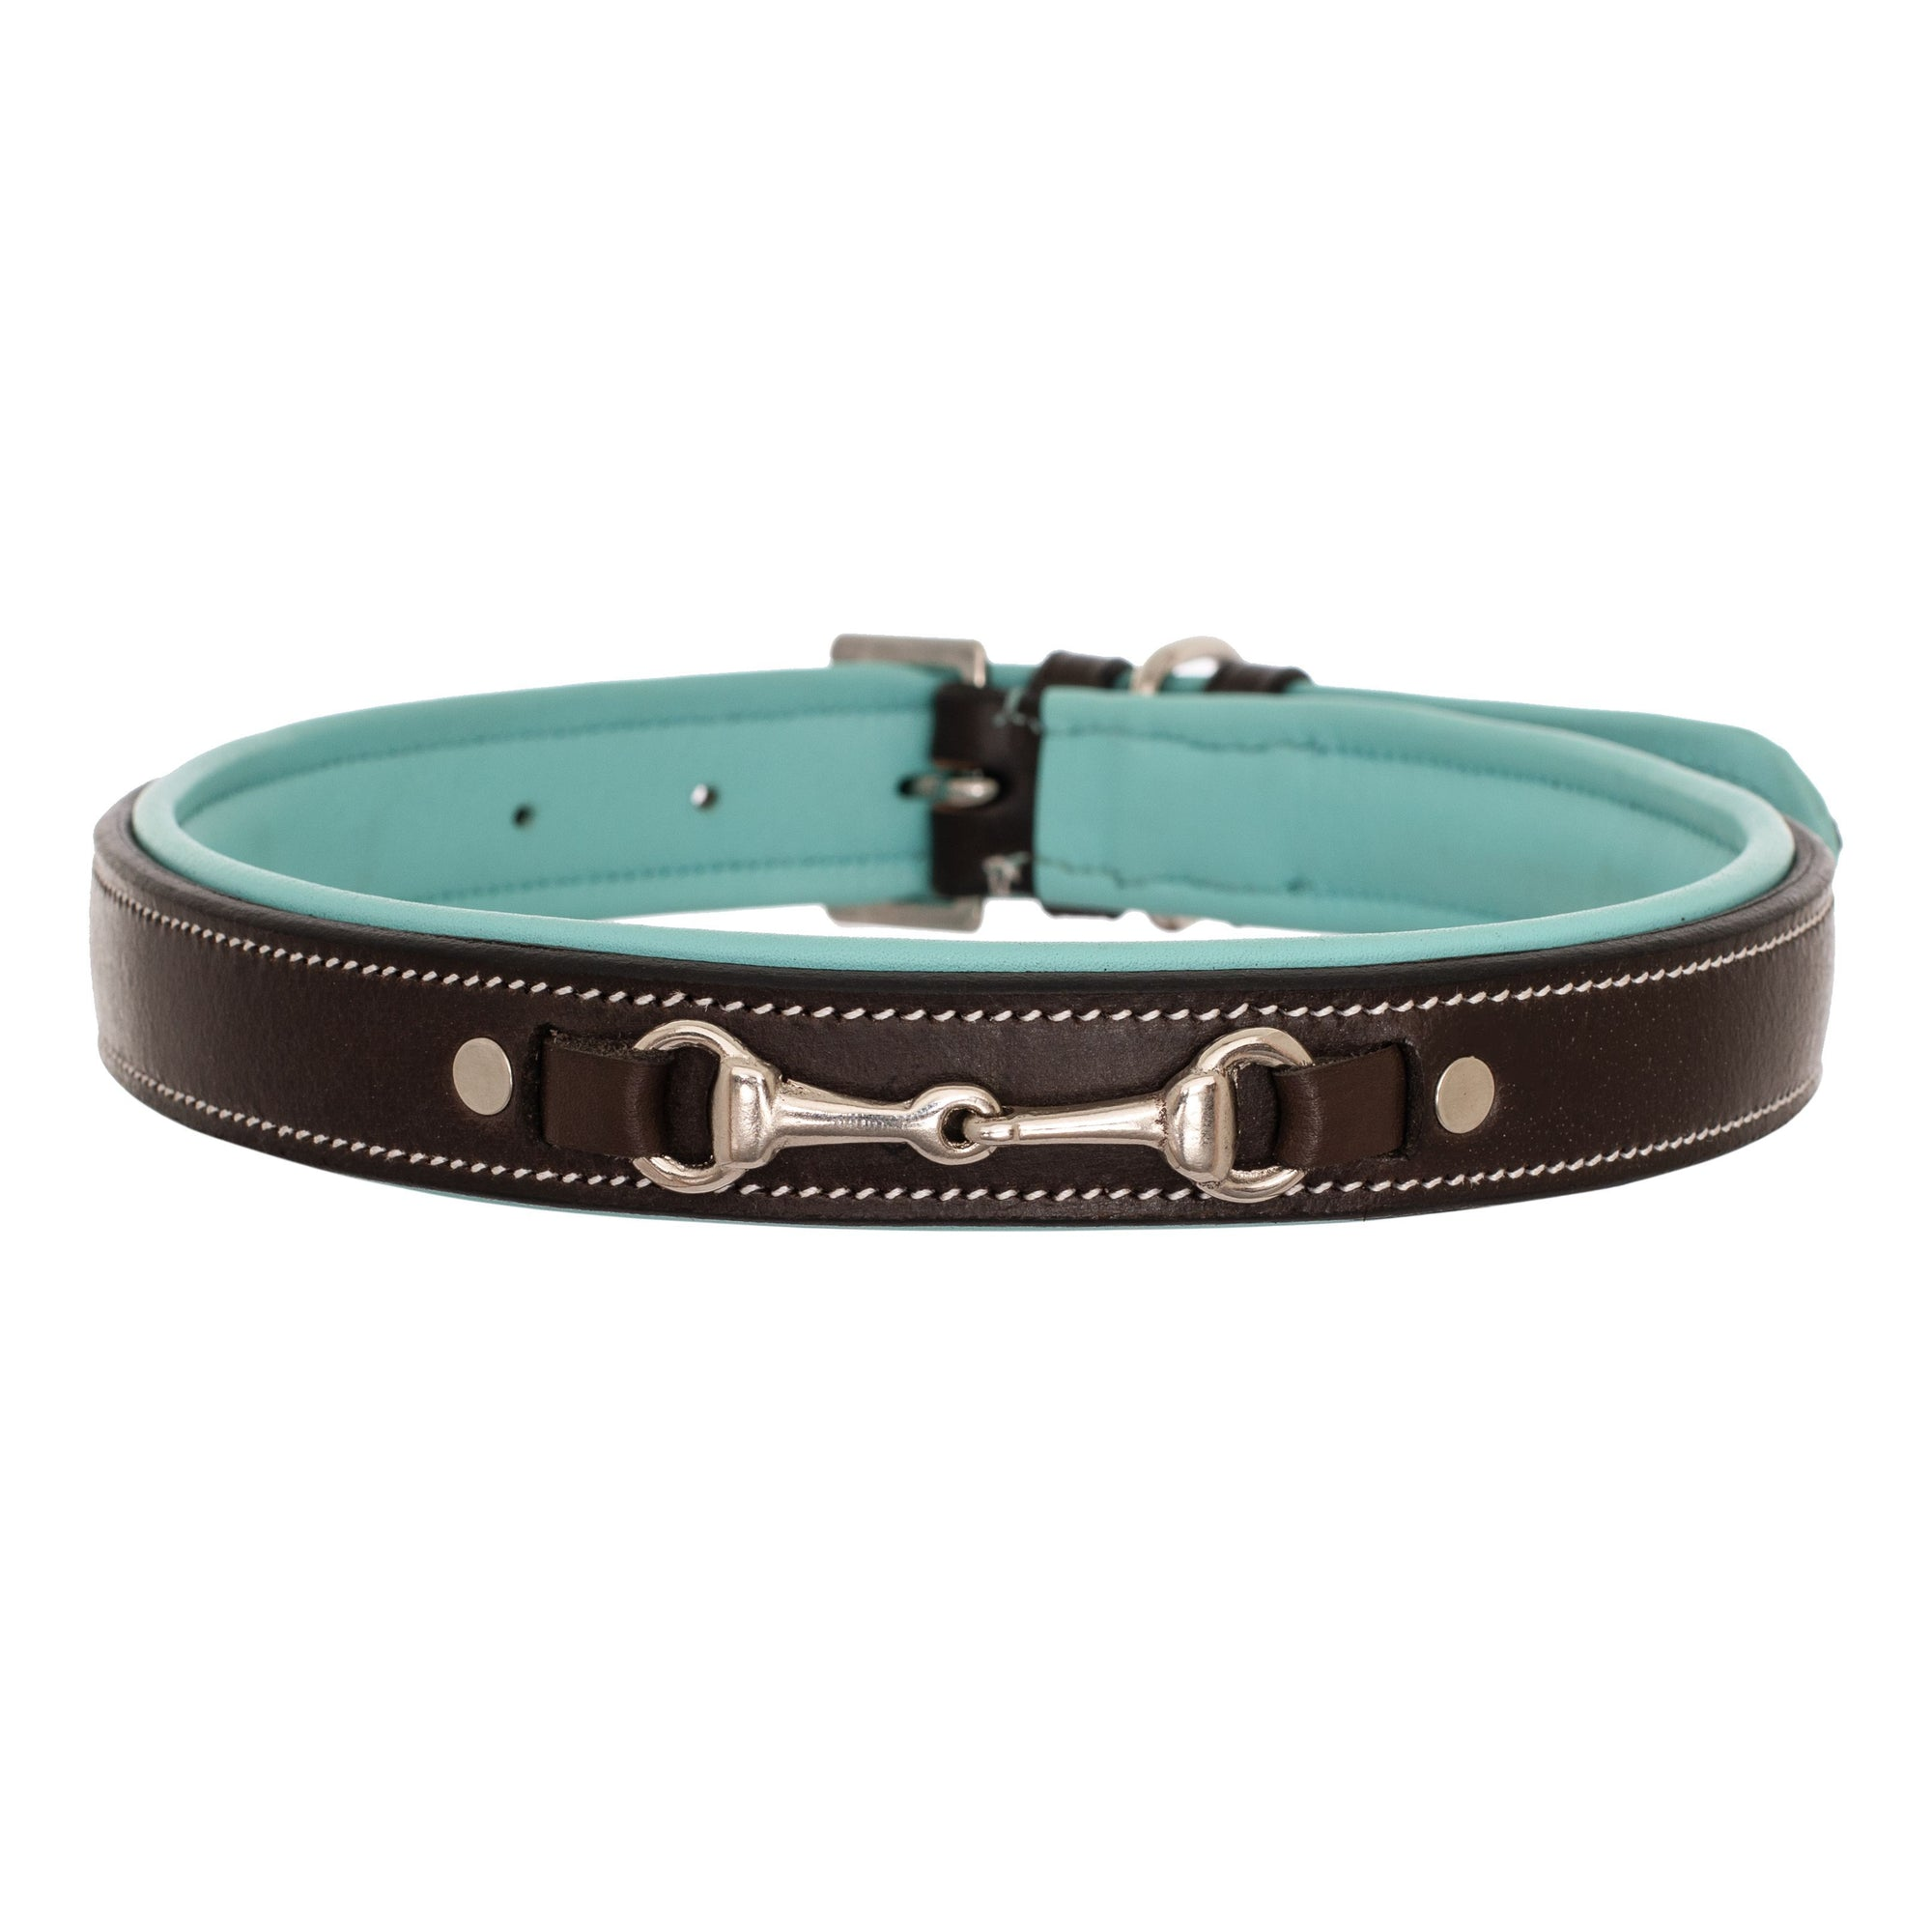 ExionPro Silver Snaffle Padded Leather Dog Collar - Sky Blue Padding-Bridles & Reins